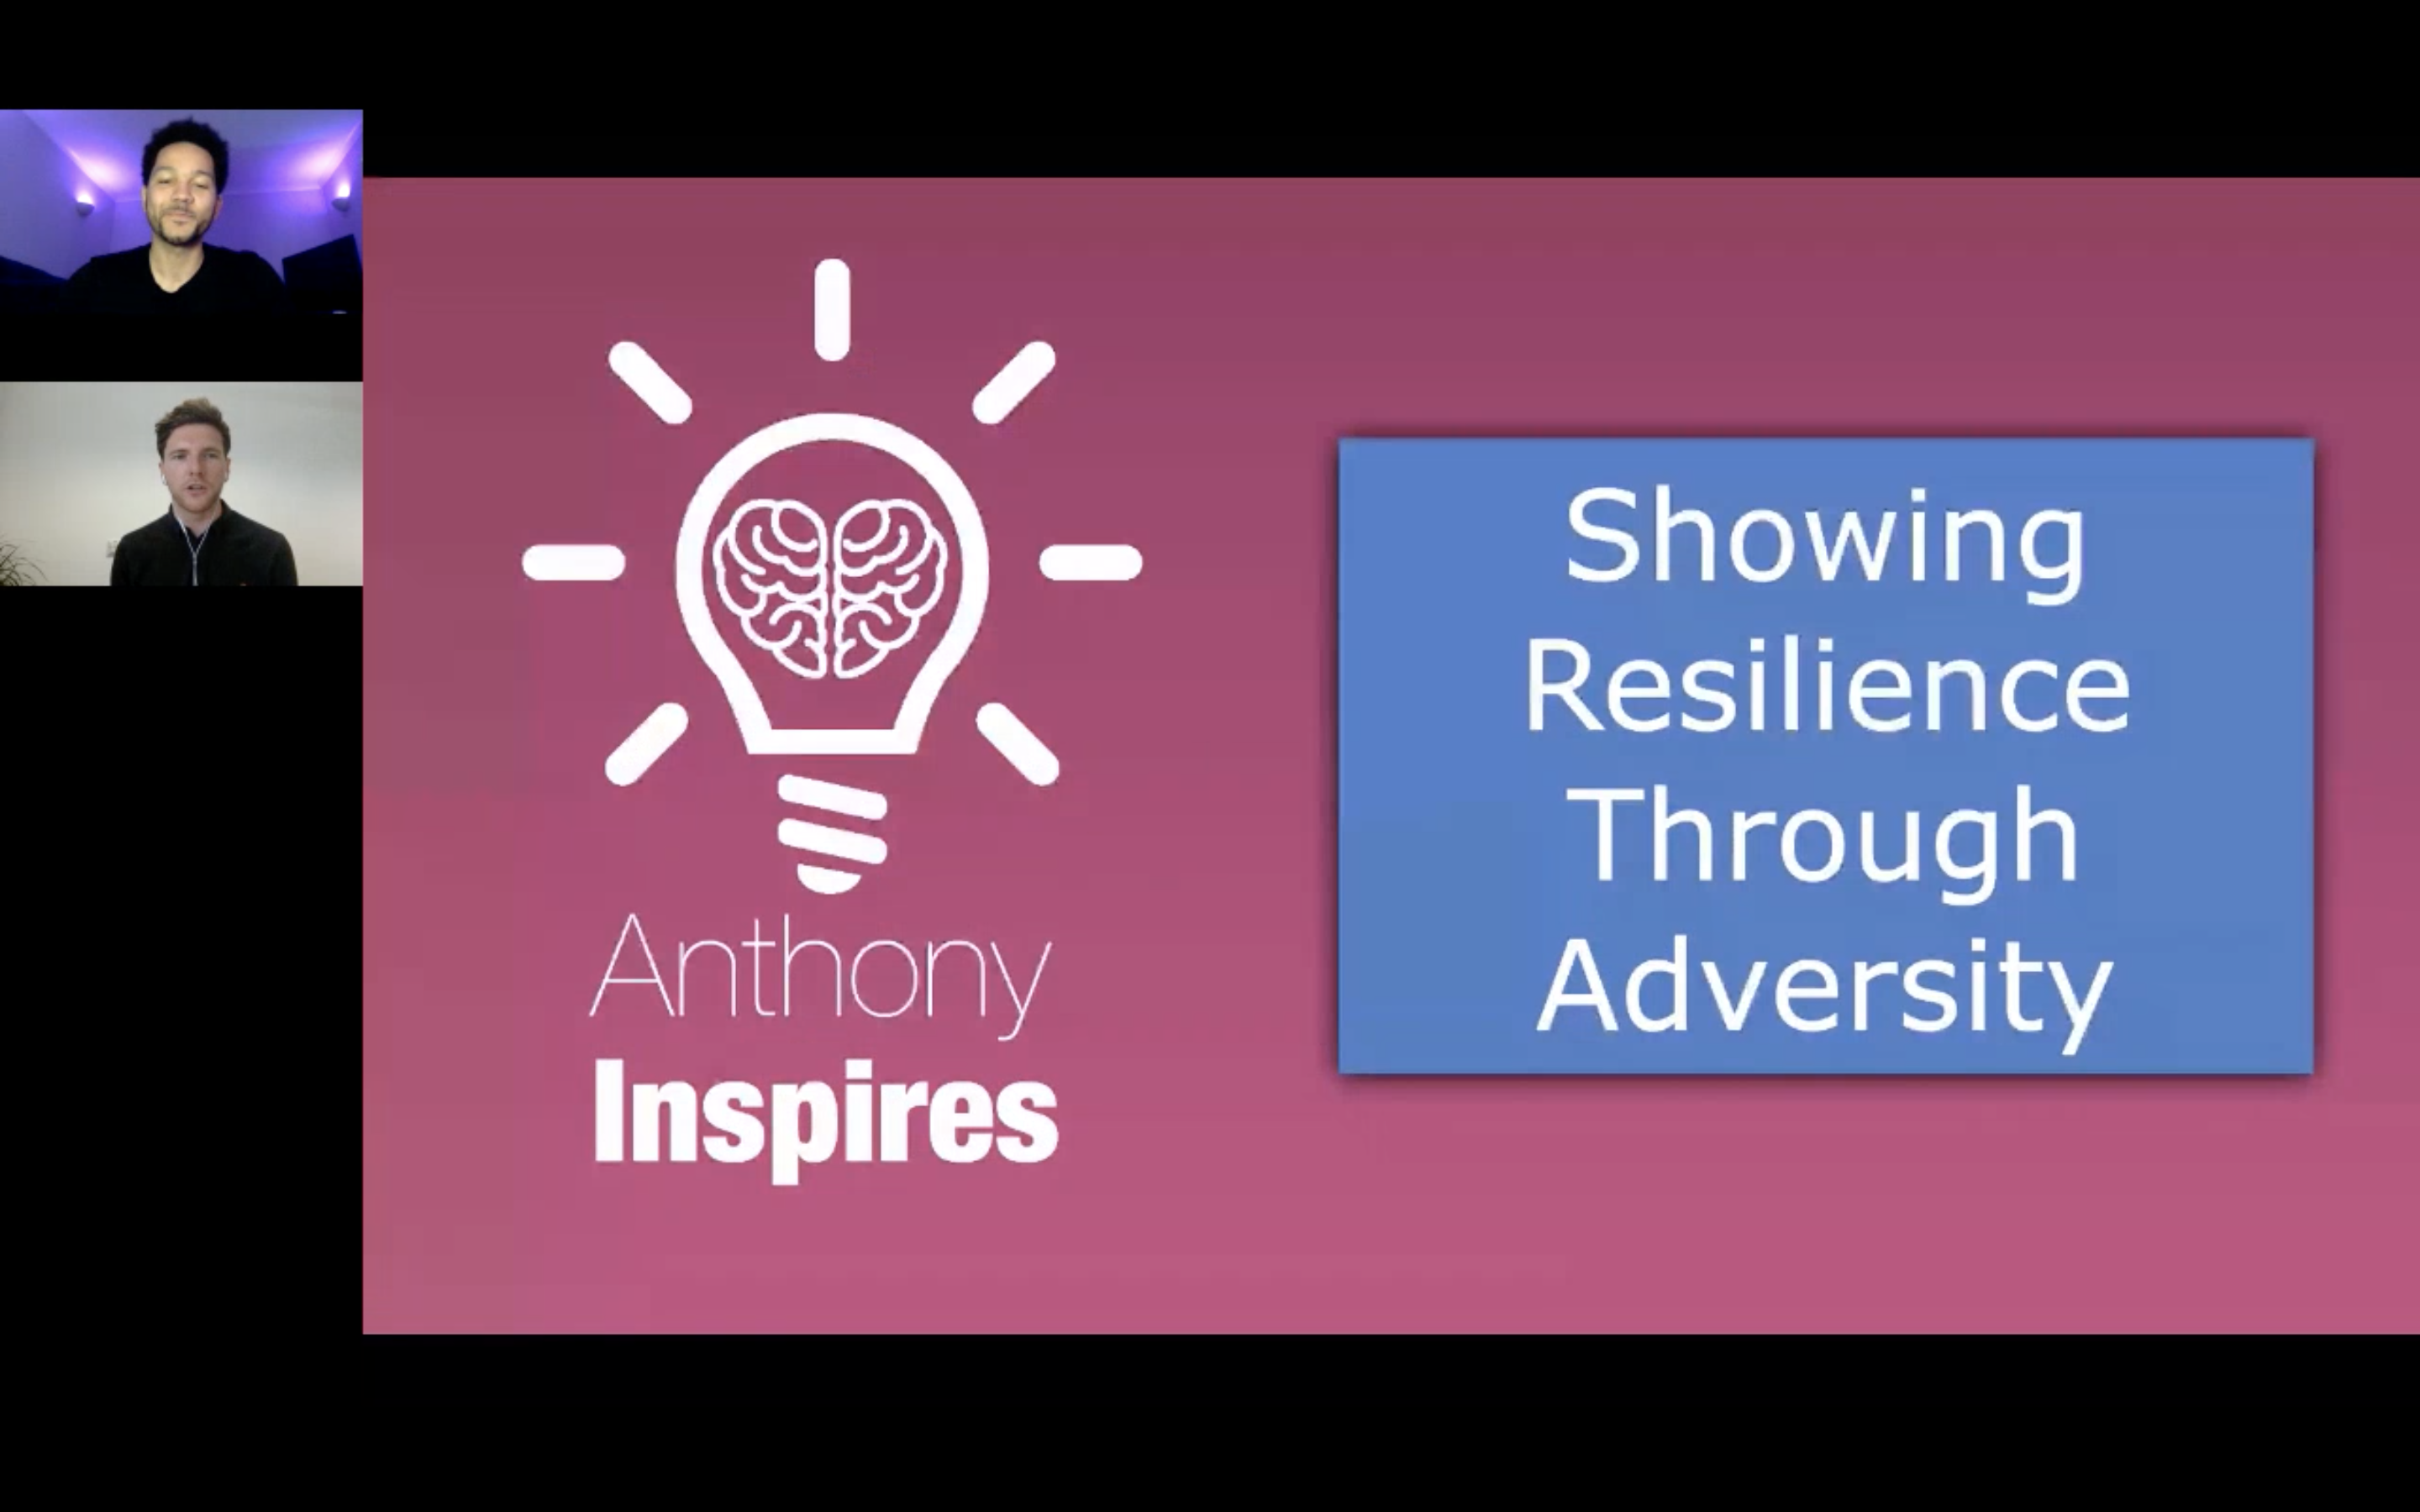 Showing Resilience Through Adversity